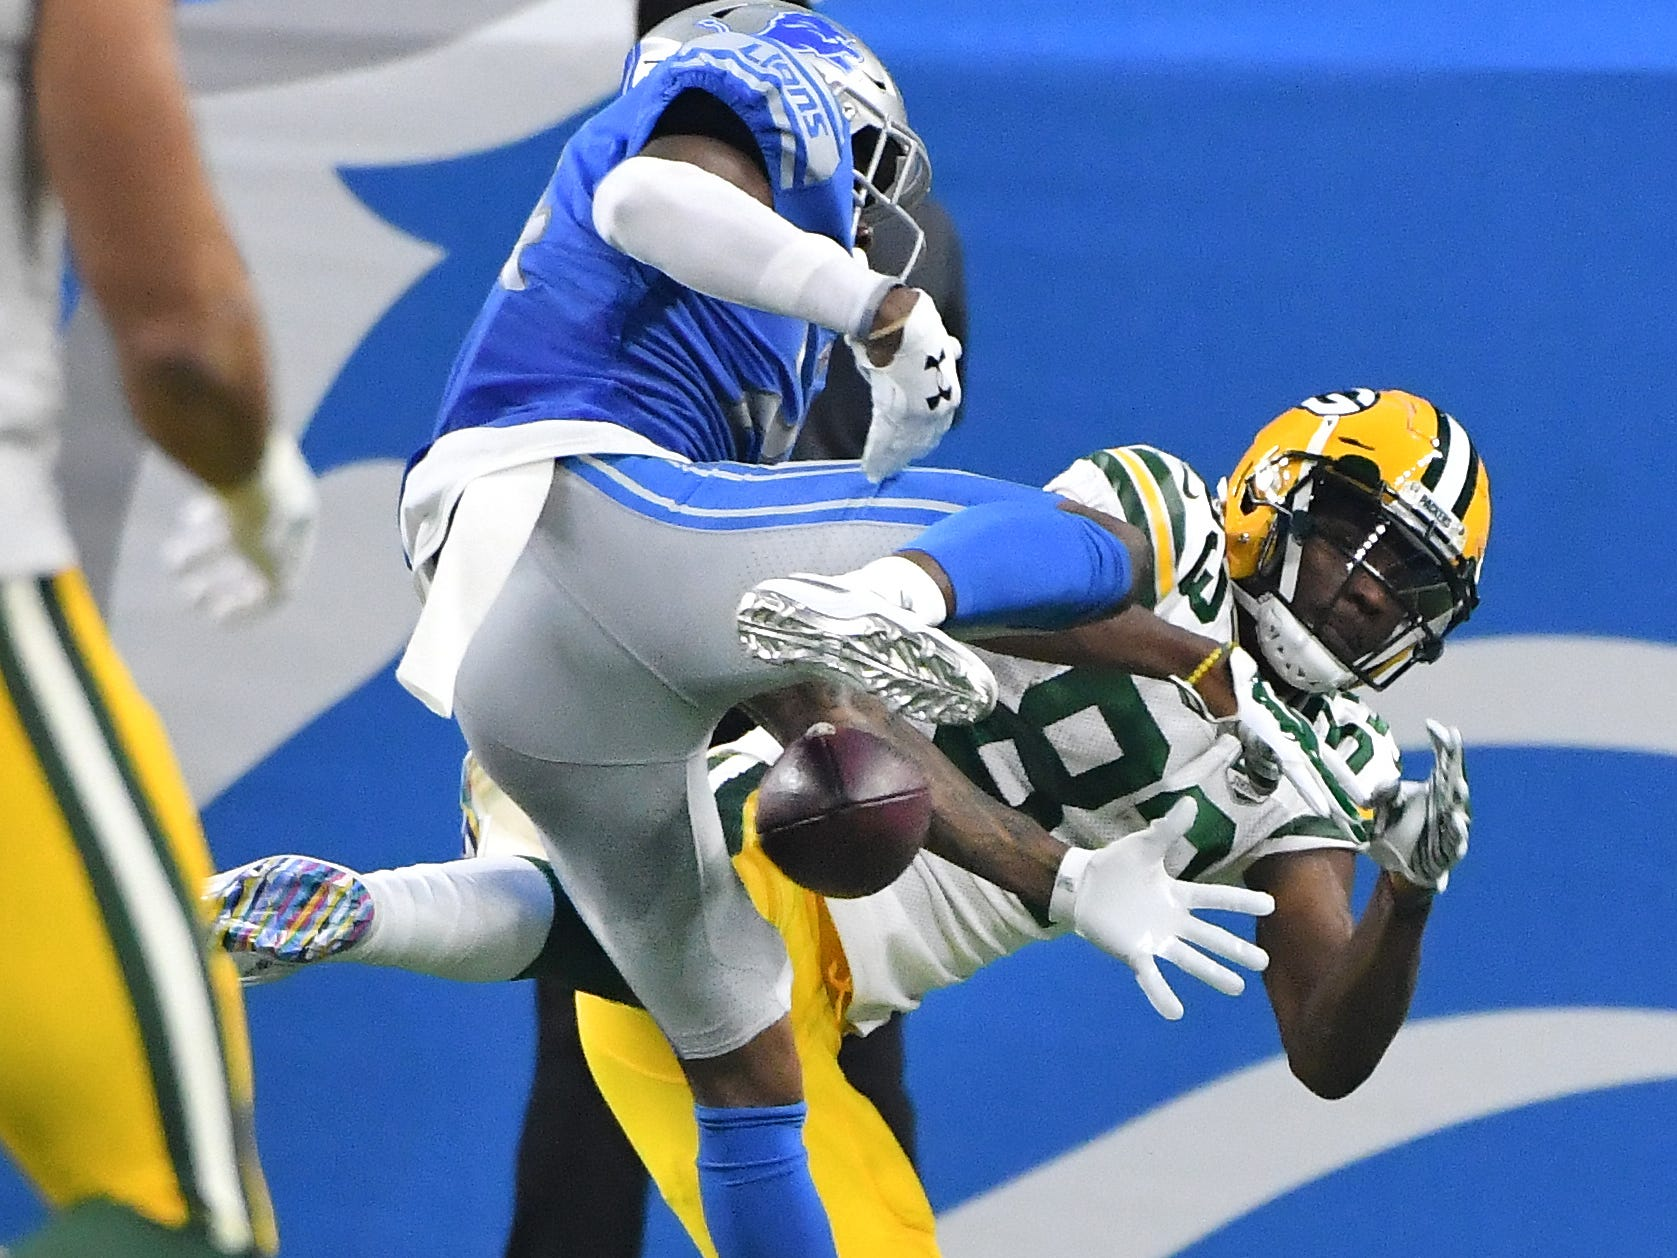 Lions' Nevin Lawson breaks up a pass in the end zone intended for Packers' Marquez Valdes-Scantling in the first quarter.